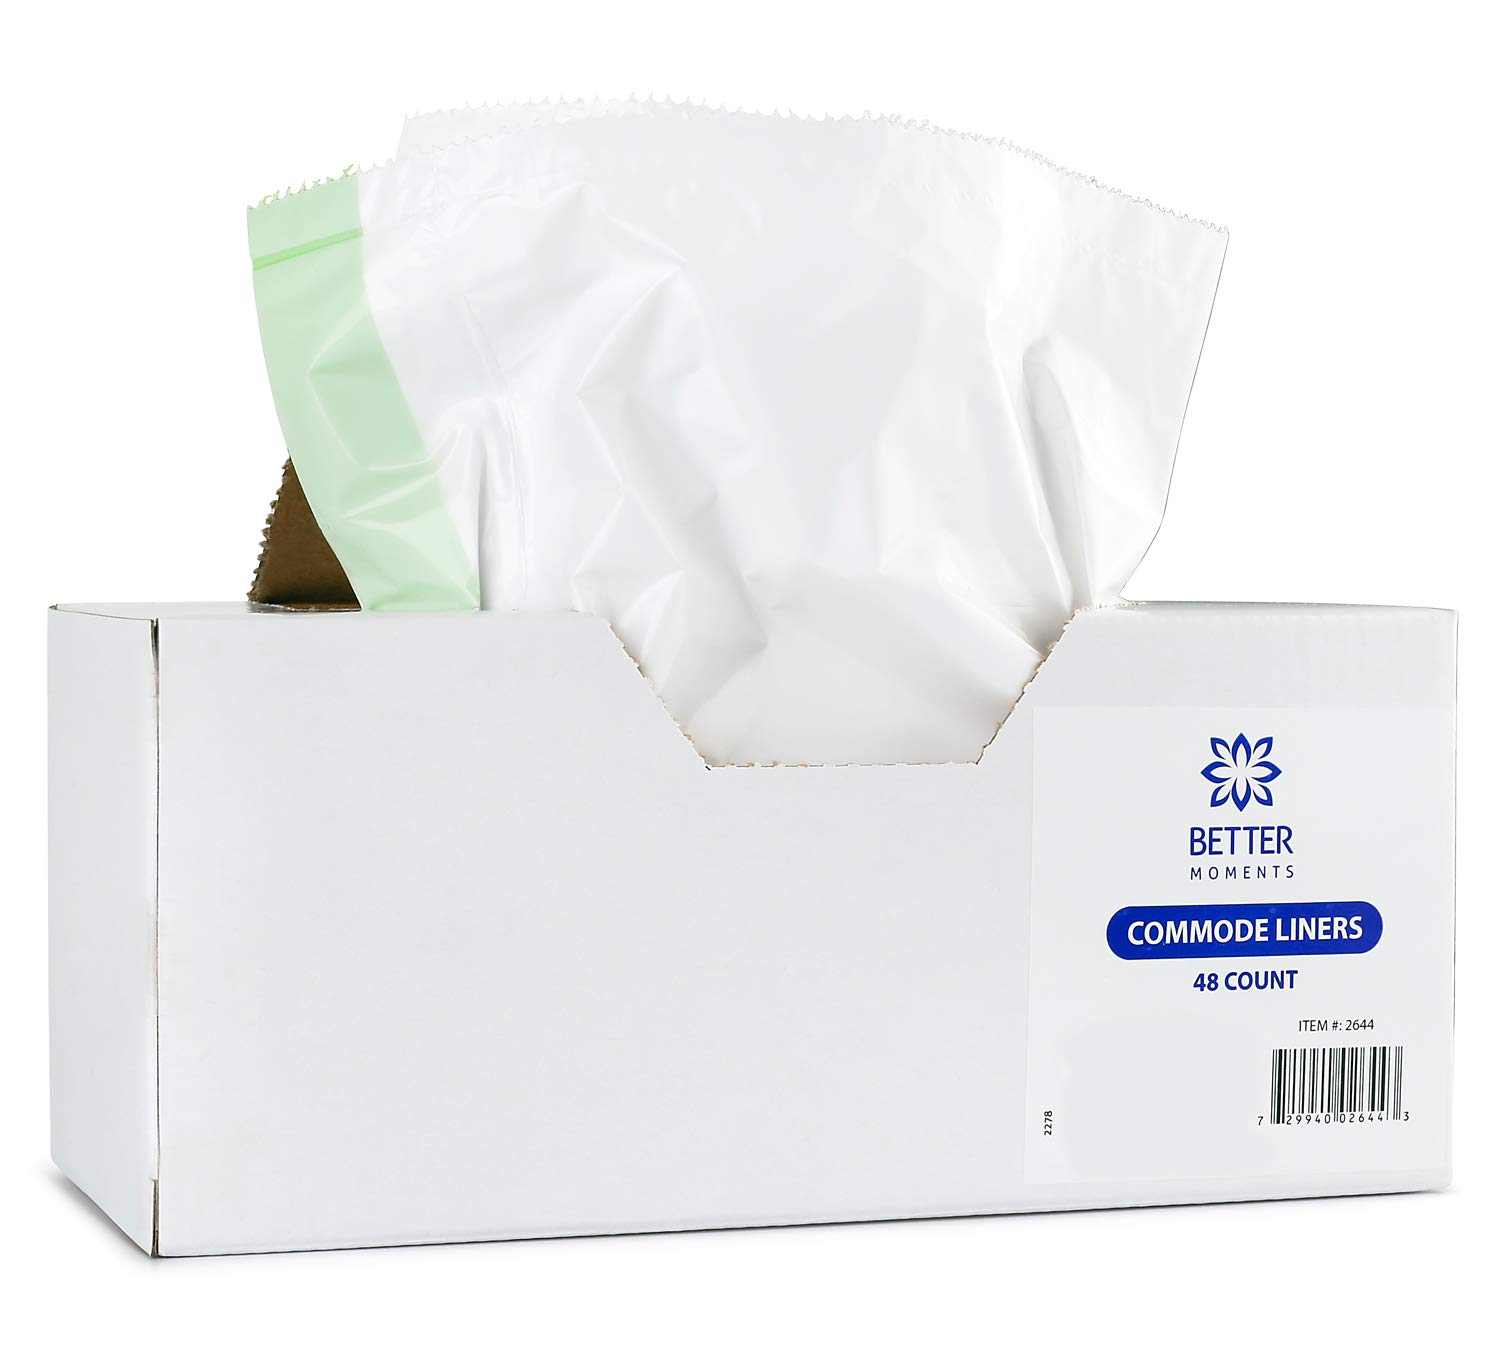 Commode Liners By Better Moments – Leak Proof & Sanitary Bedside Commode Liners – Disposable Commode Liners Fit Standard Commode Pails & Adult Commode Chairs – Value Pack Of 48 Portable Commode Liners